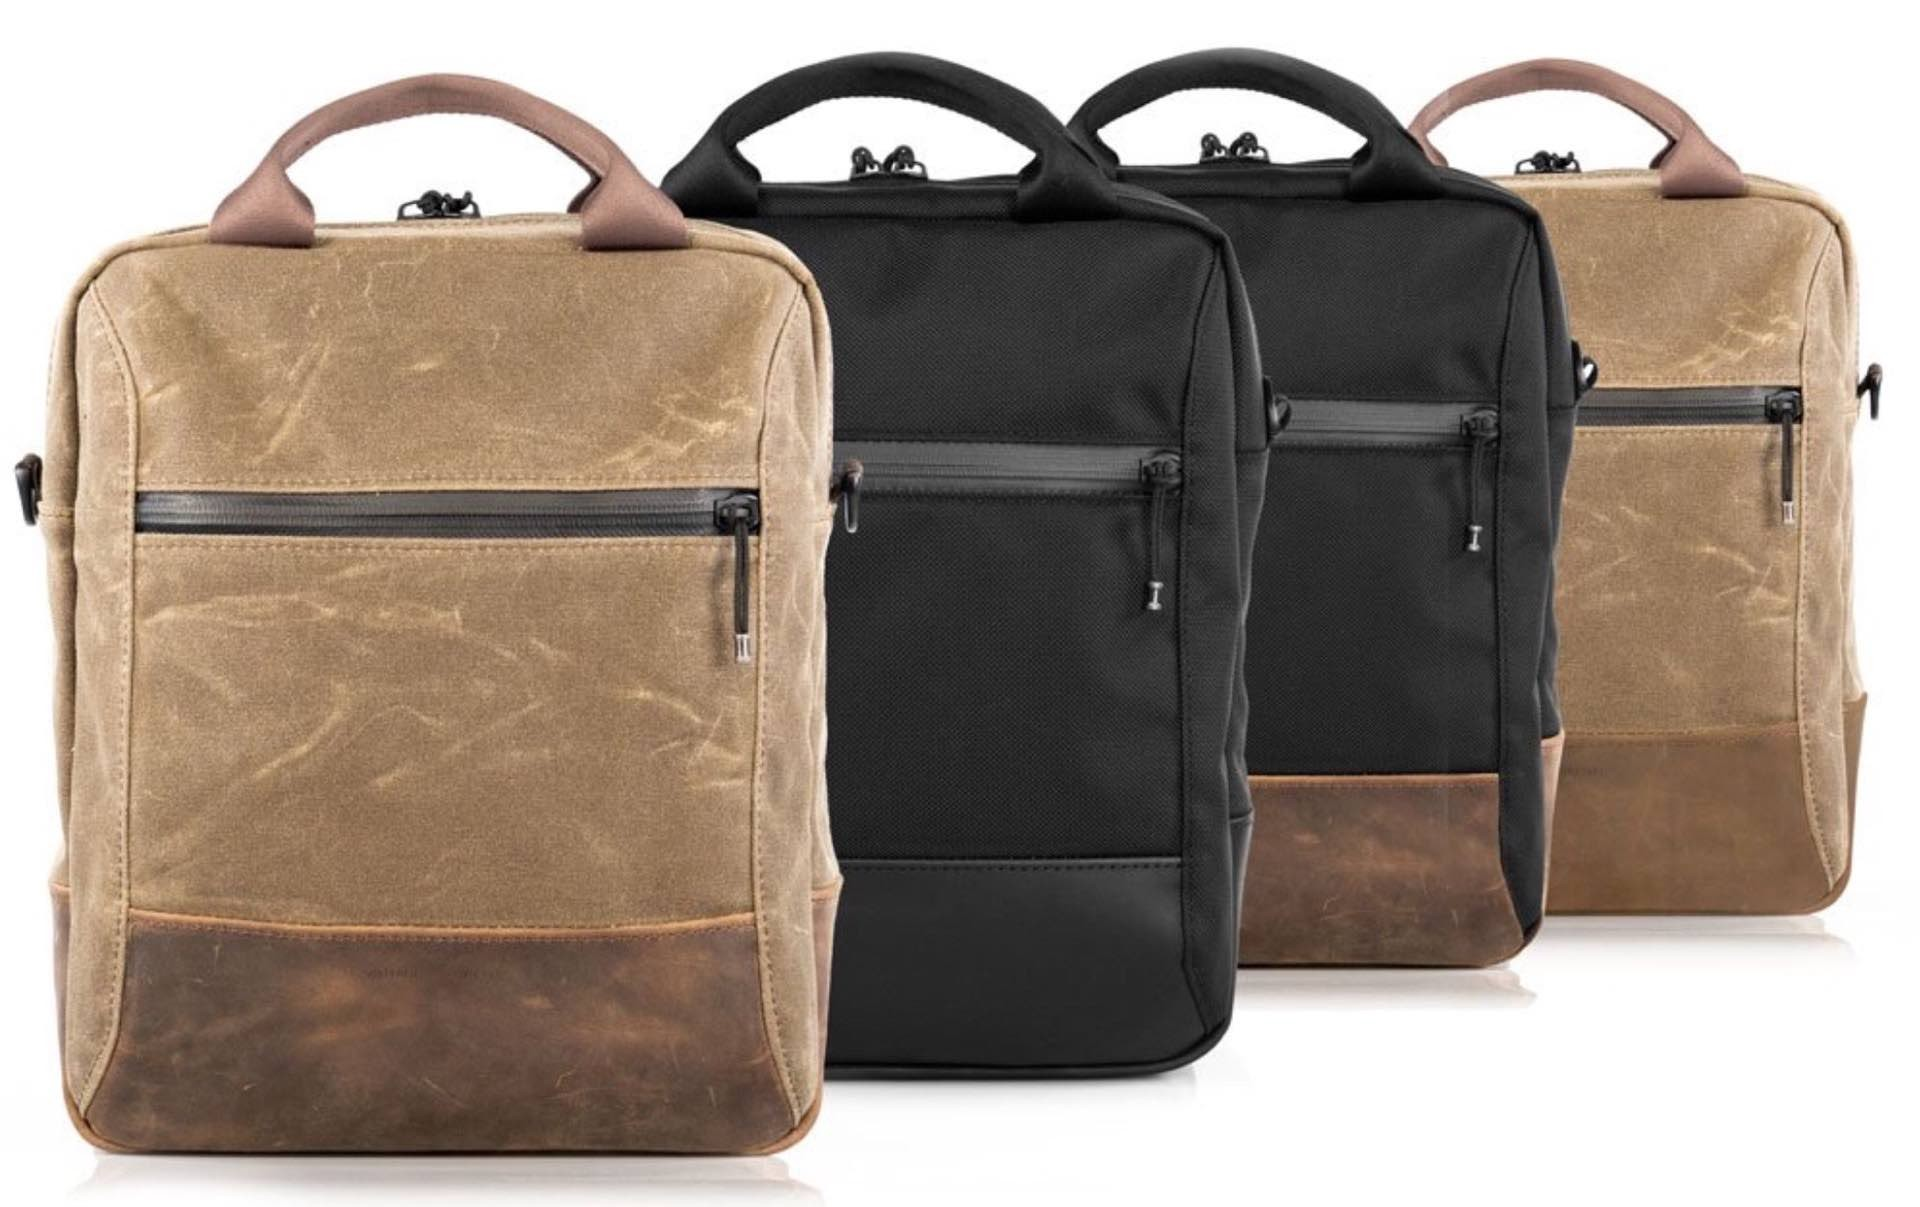 waterfield-designs-hitch-crossbody-laptop-brief-colorways